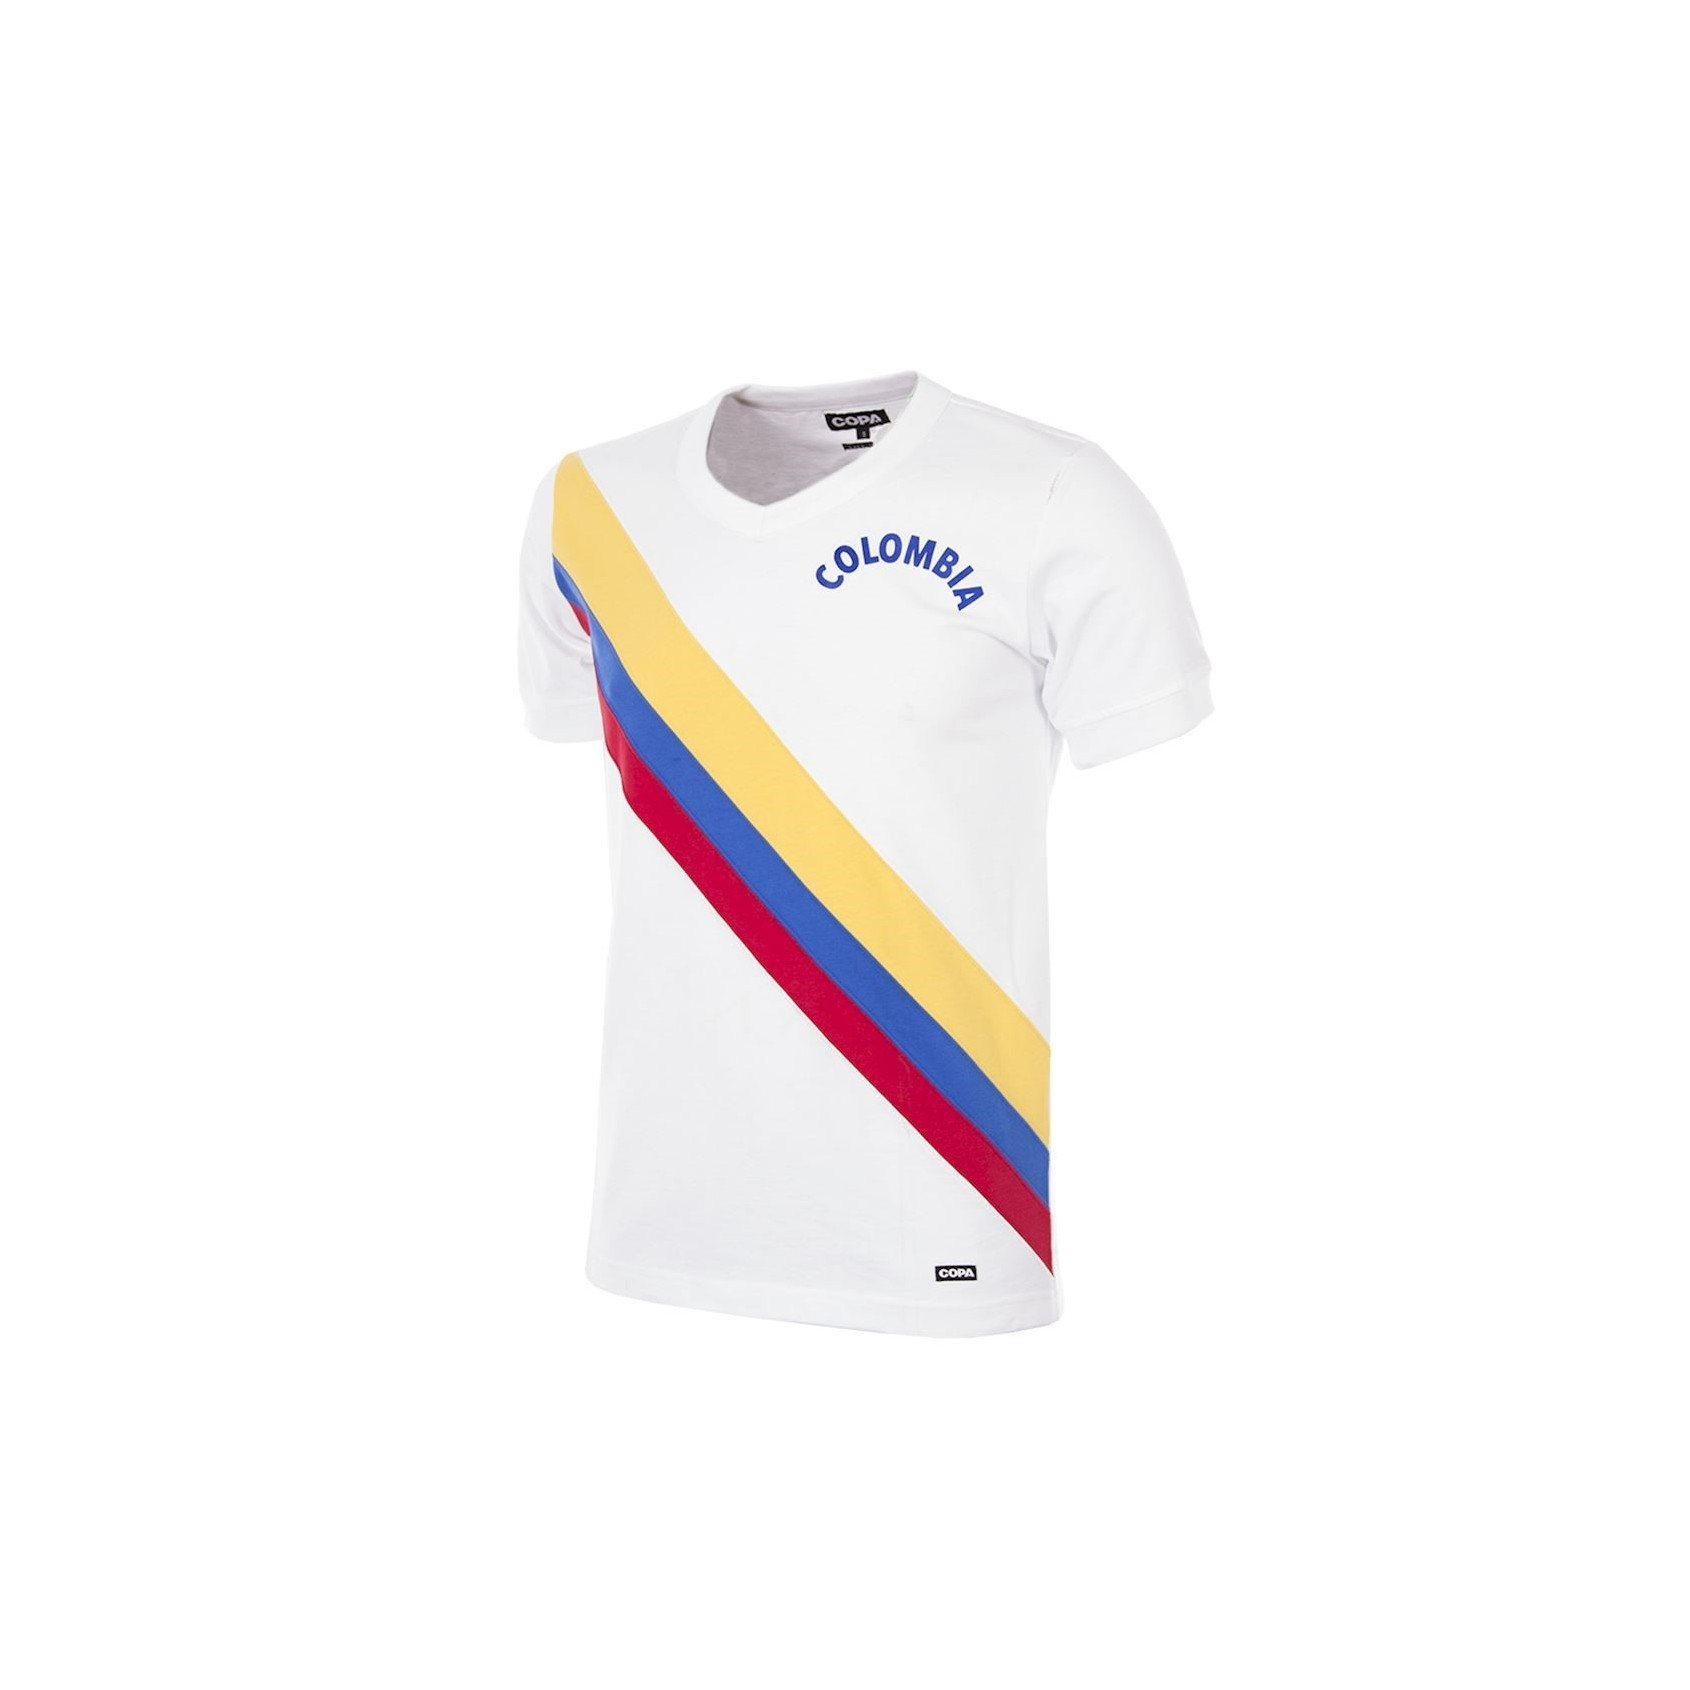 MAILLOT RETRO COLOMBIE 1973 face